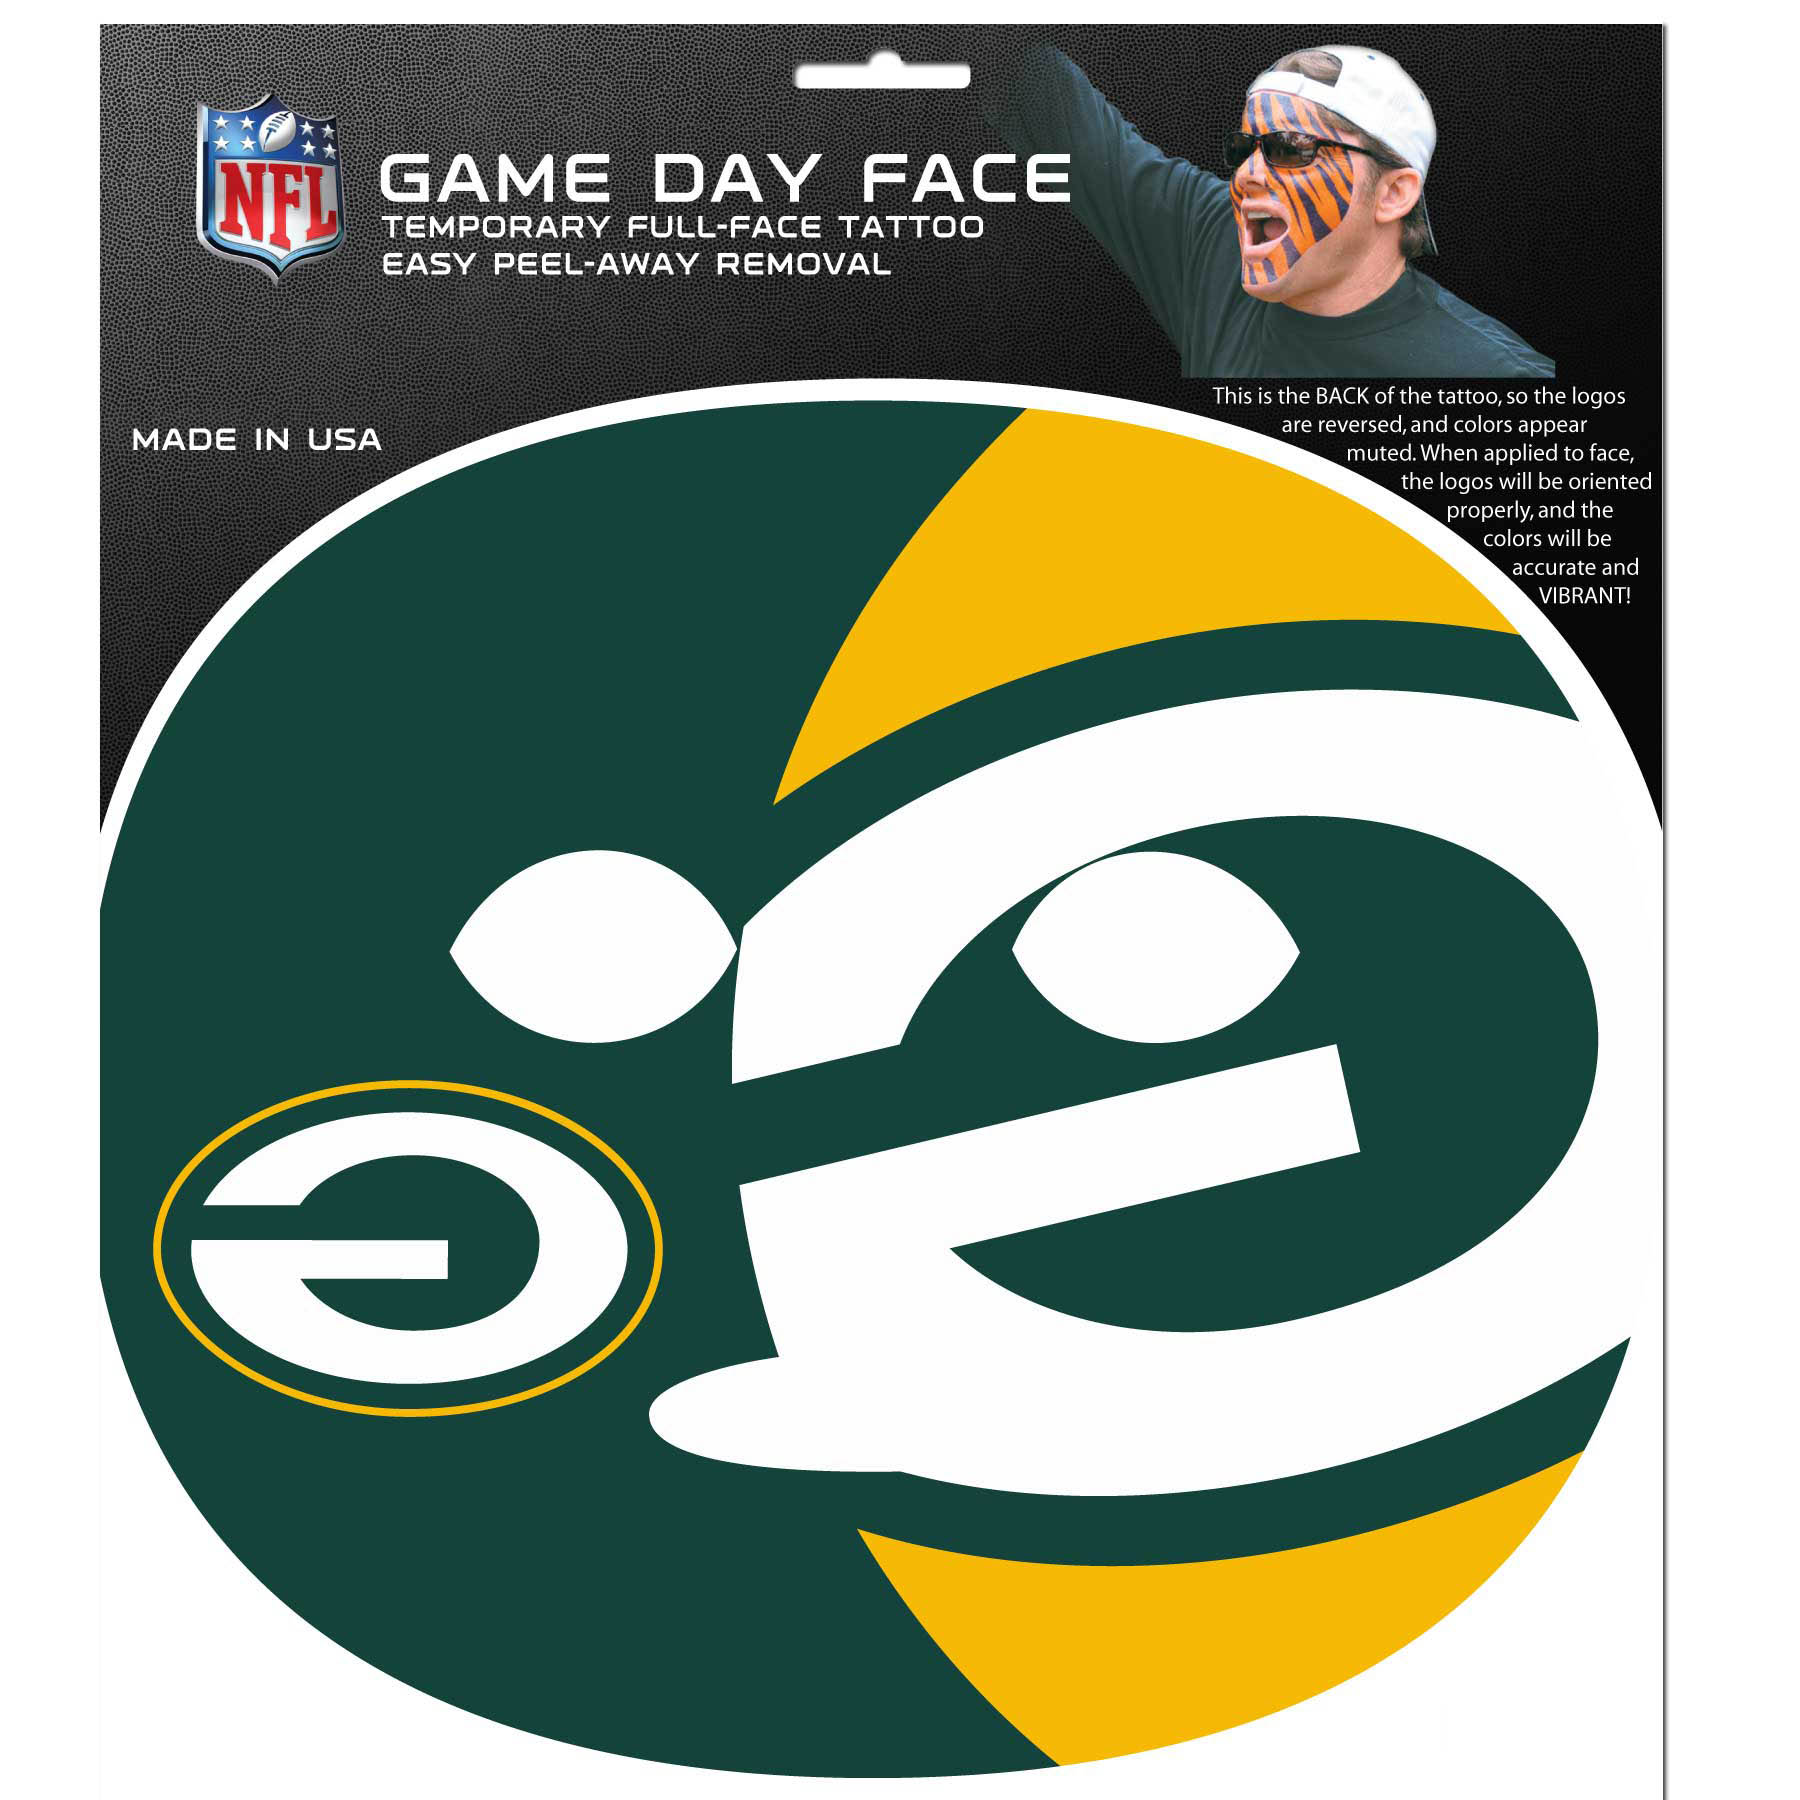 Green Bay Packers Set of 4 Game Day Faces - No better way to show your team pride than by painting your face. Siskiyou's Game Day Face Temporary Tattoo isn't your typical face paint. It is a water based application that doesn't smudge, smear or sweat off while you're wearing it and easily peels off after you're done celebrating your team's big Win! The temporary tattoo is large enough to trim down to fit your face. Our Game Day Face Temporary Tattoo's are fun for fans of all ages. You may have seen our product before, these are the same Temporary Face Tattoos as pitched on ABC's Shark Tank.